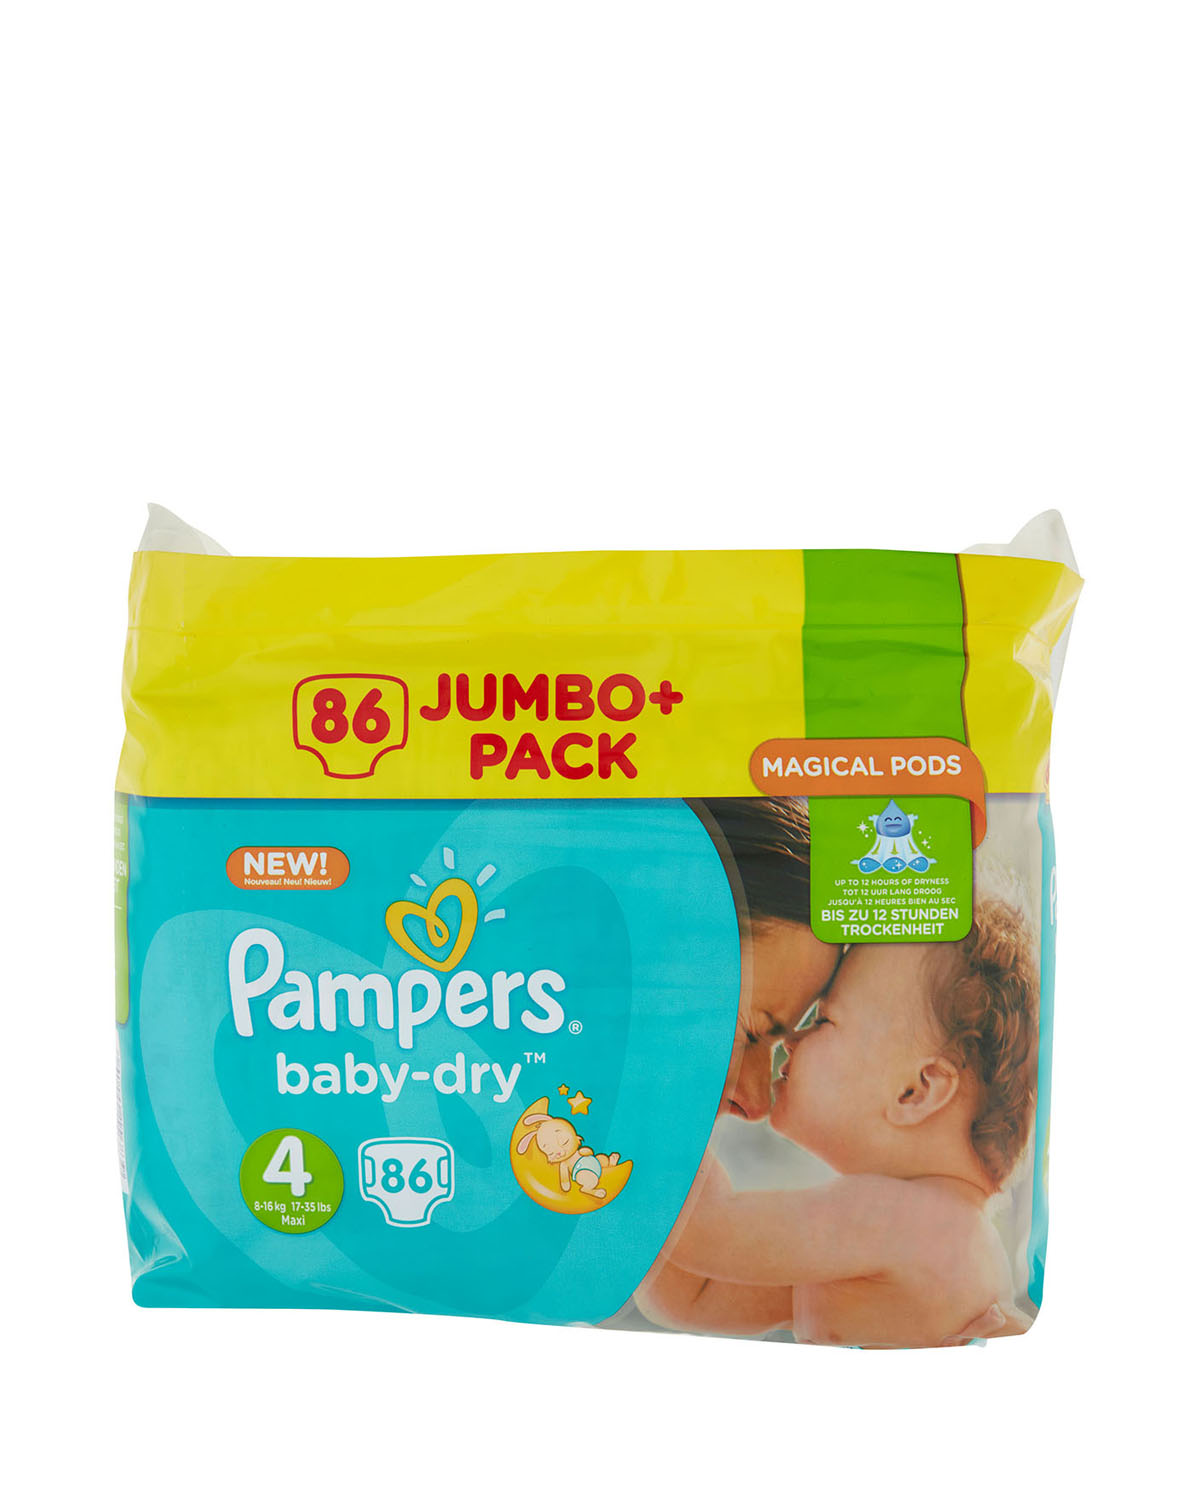 Pack 86 Nappies Pampers Baby Dry Size 4 Jumbo